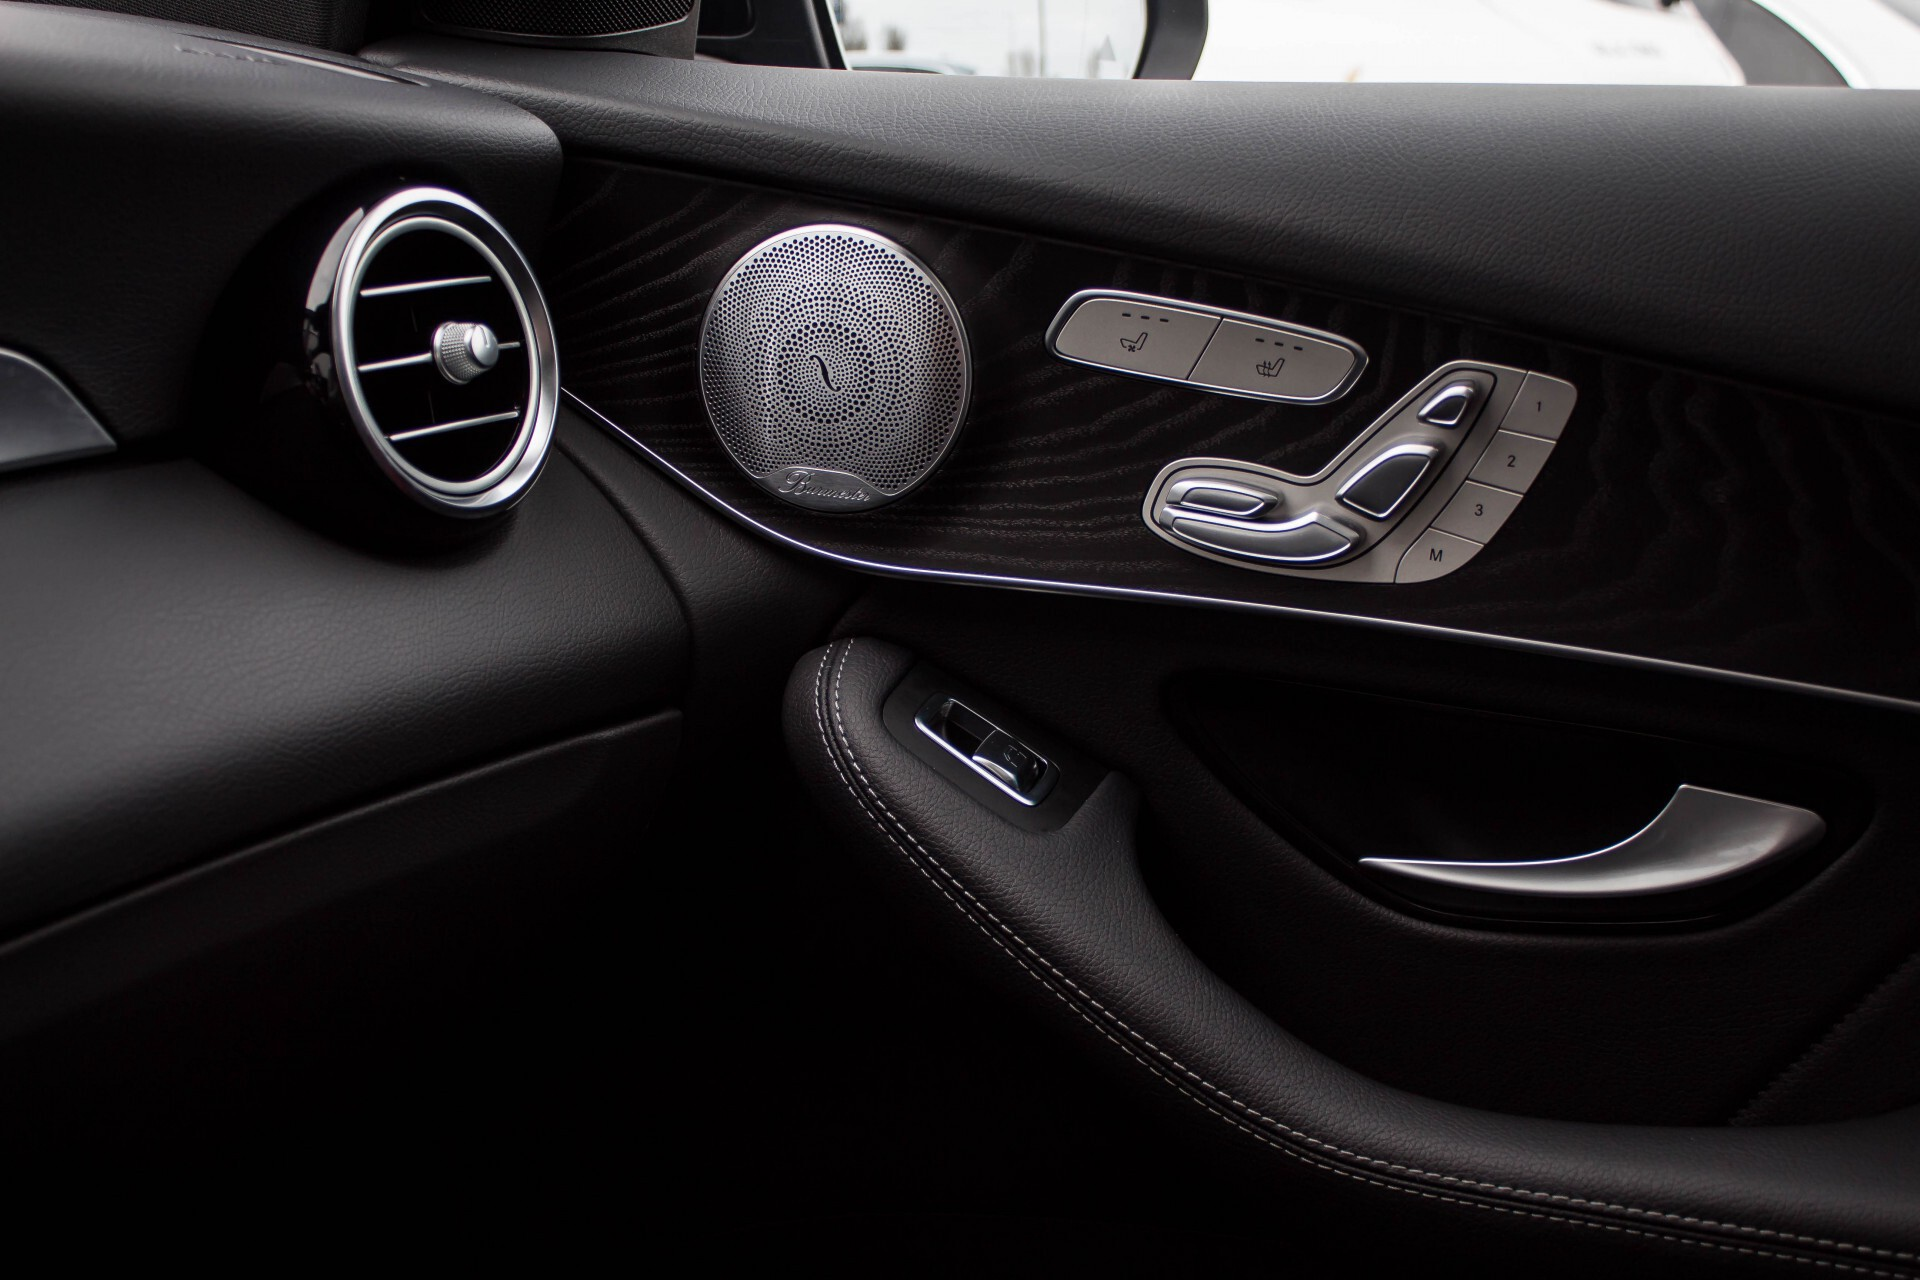 Mercedes-Benz GLC-Klasse 300 4-M AMG Panorama Distronic/Keyless/Burmester/Memory/Night Aut9 Foto 25